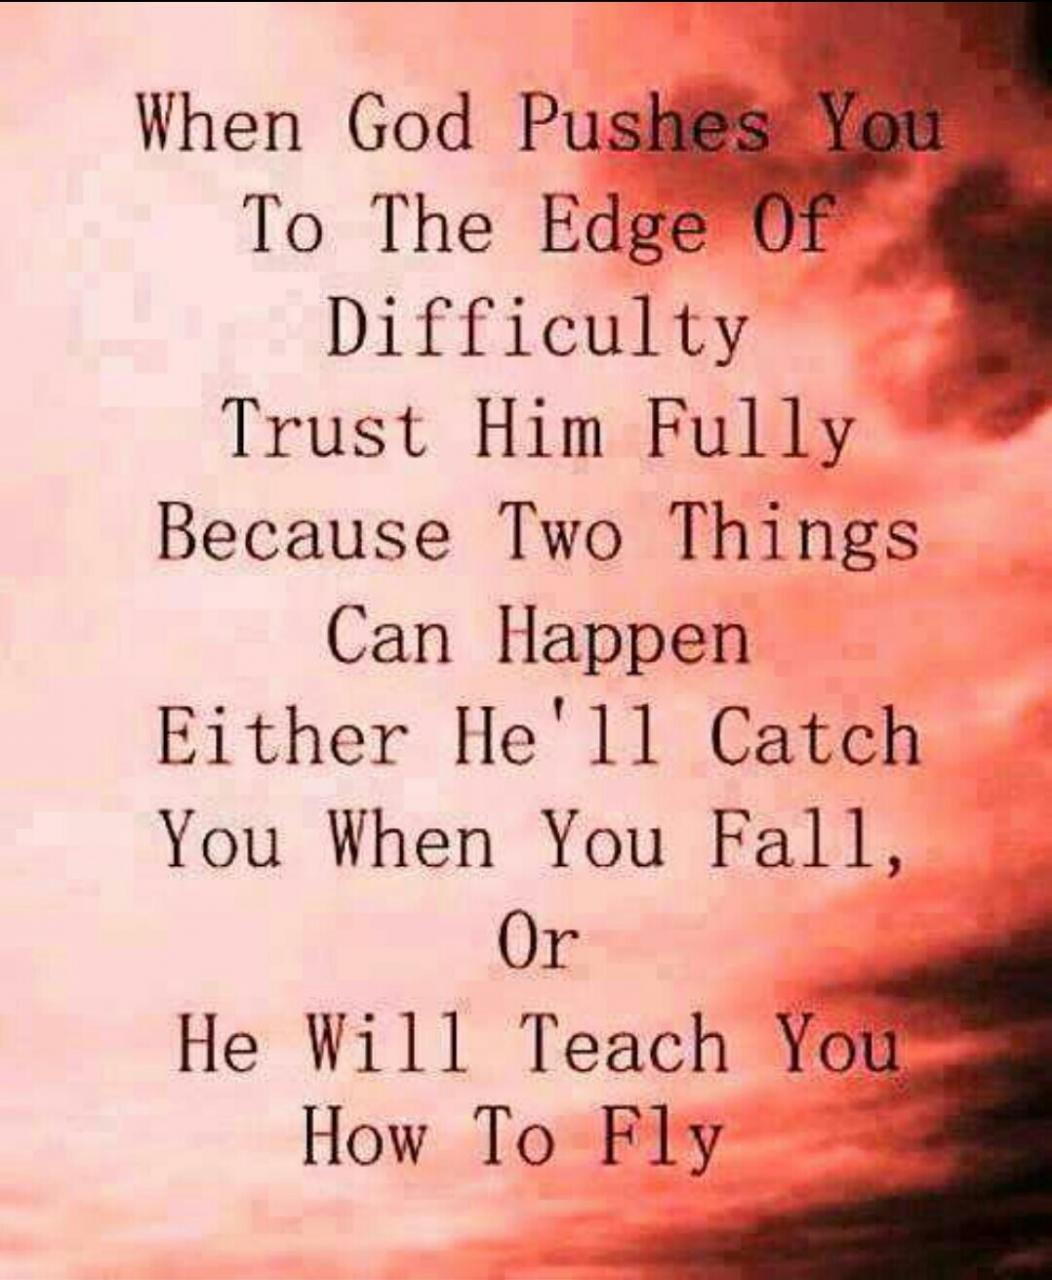 When Pushes You To The Edge Of Difficulty Trust Him Fully